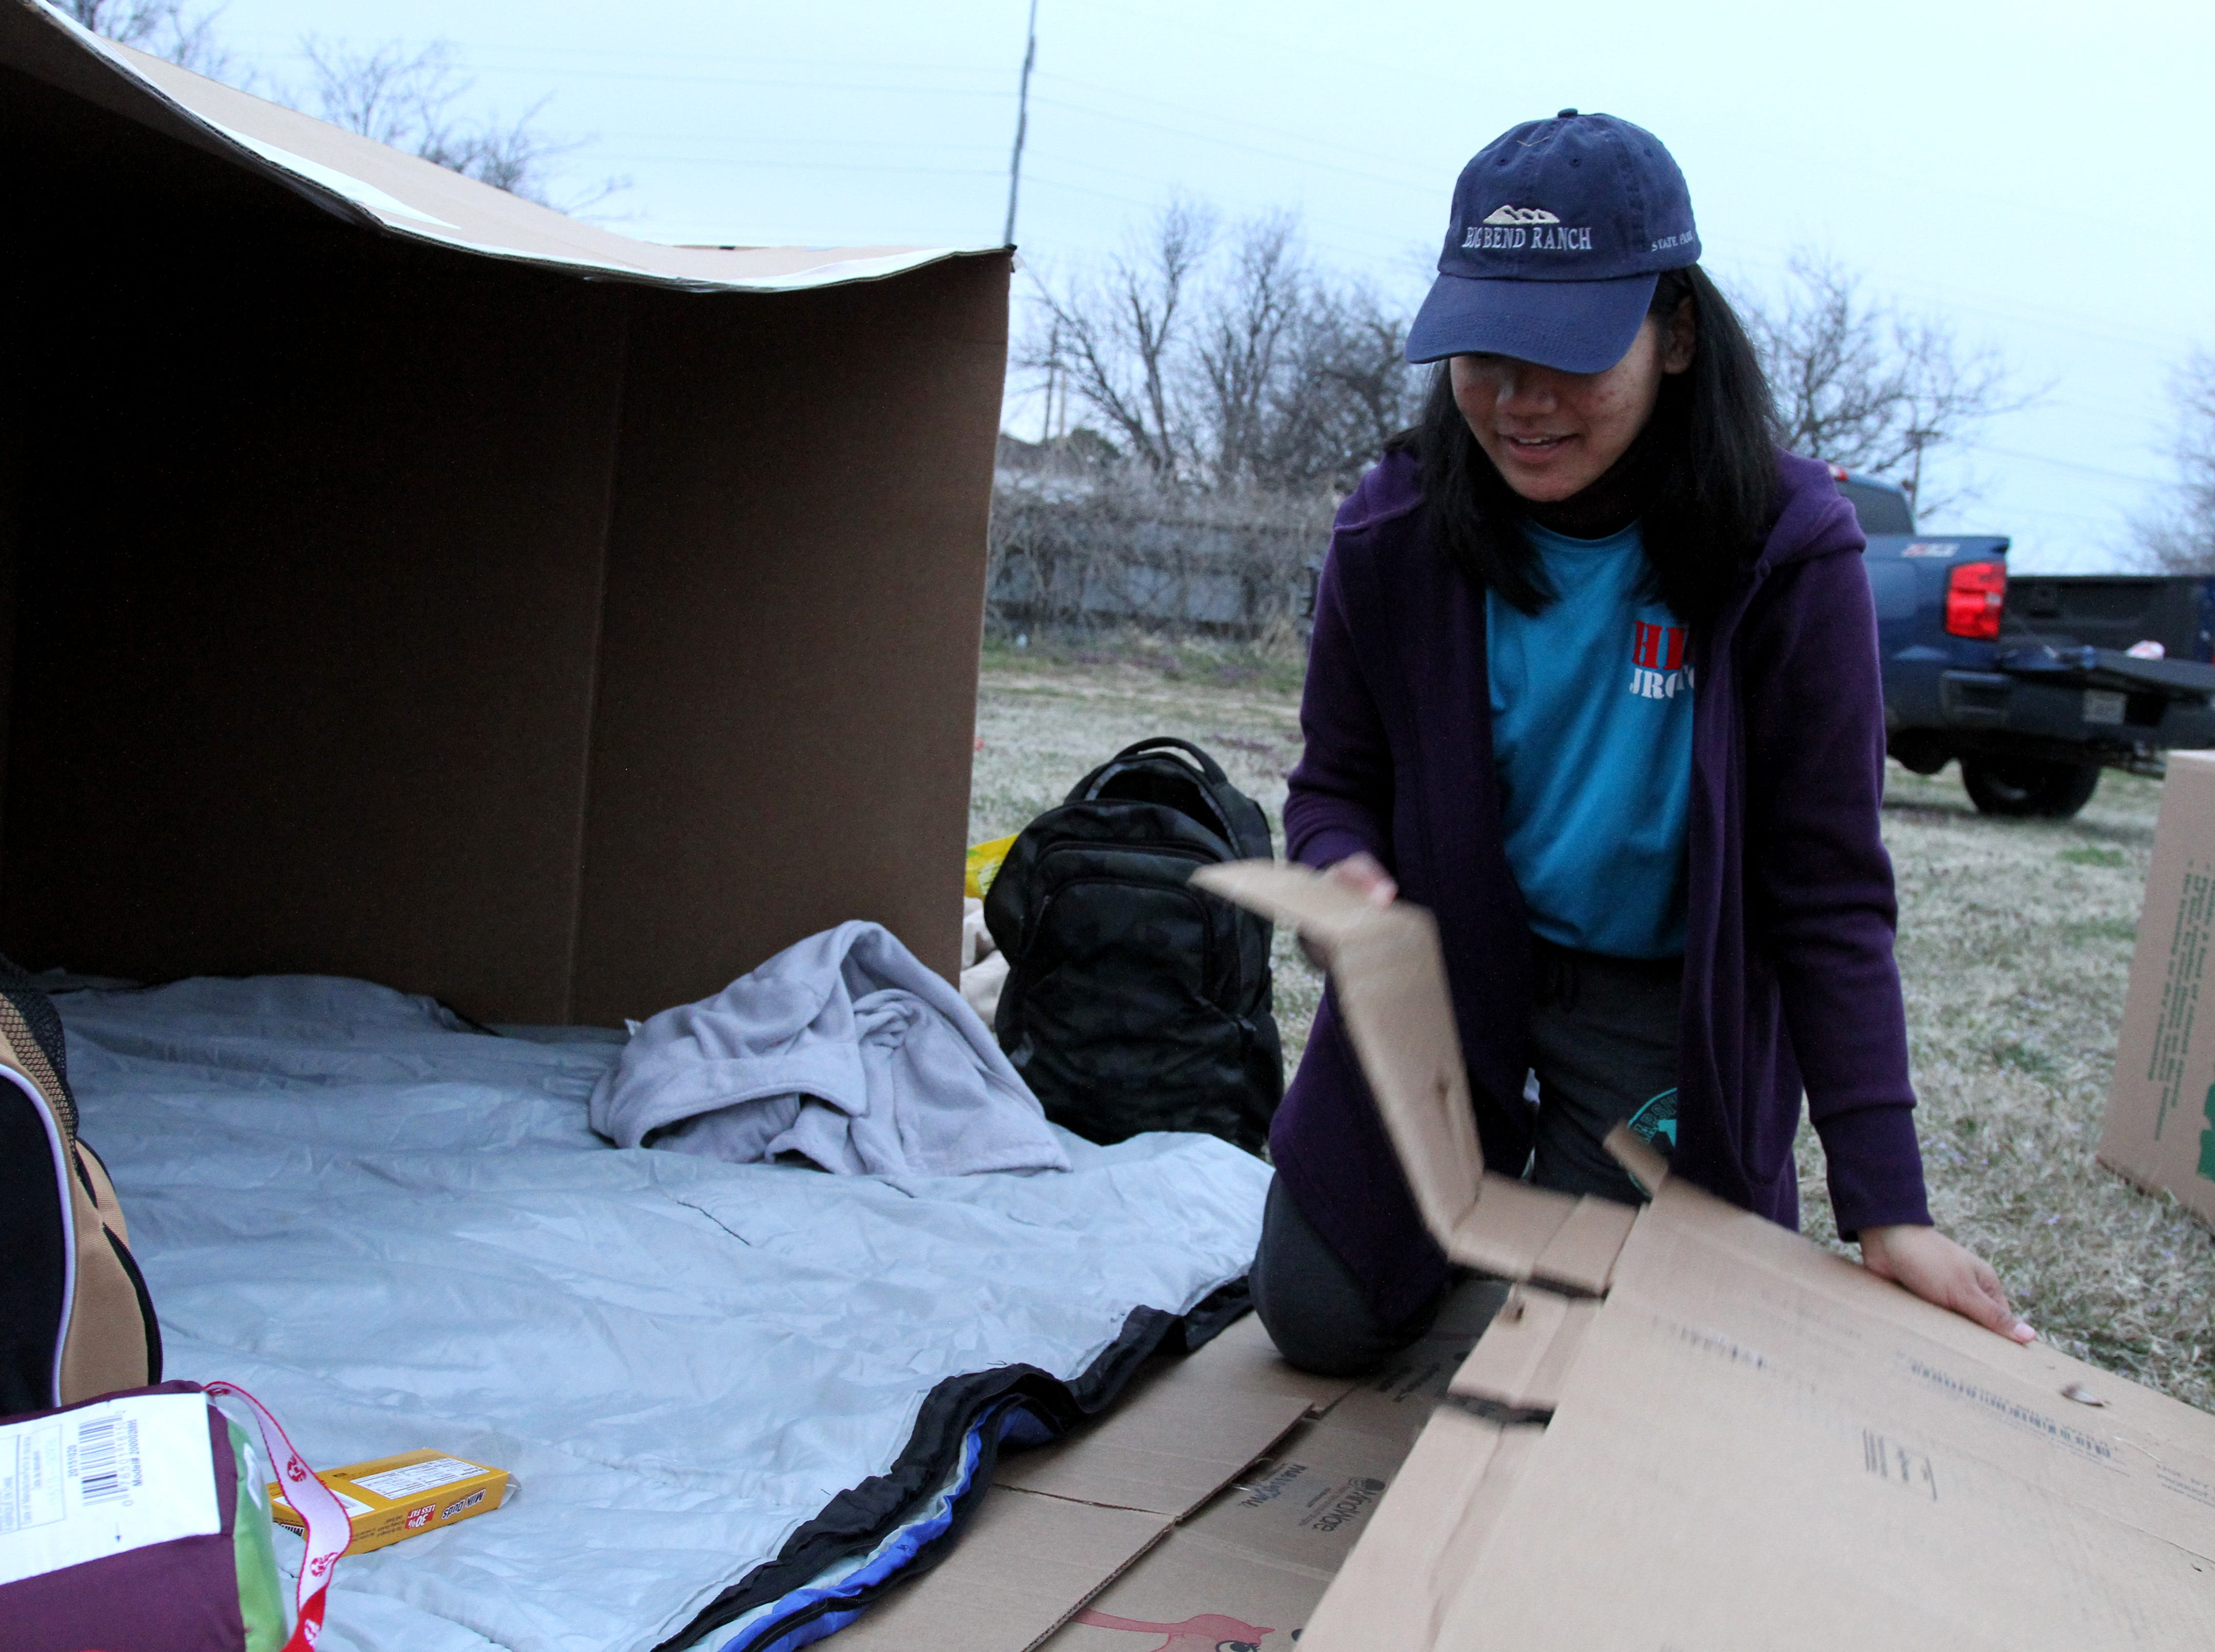 Celine Consuelo, Hirschi JROTC, puts down cardboard during a camp out to raise awareness for homeless veterans Friday, March 8, 2019, at Base Camp Lindsey located at 1909 Old Windthorst Rd.